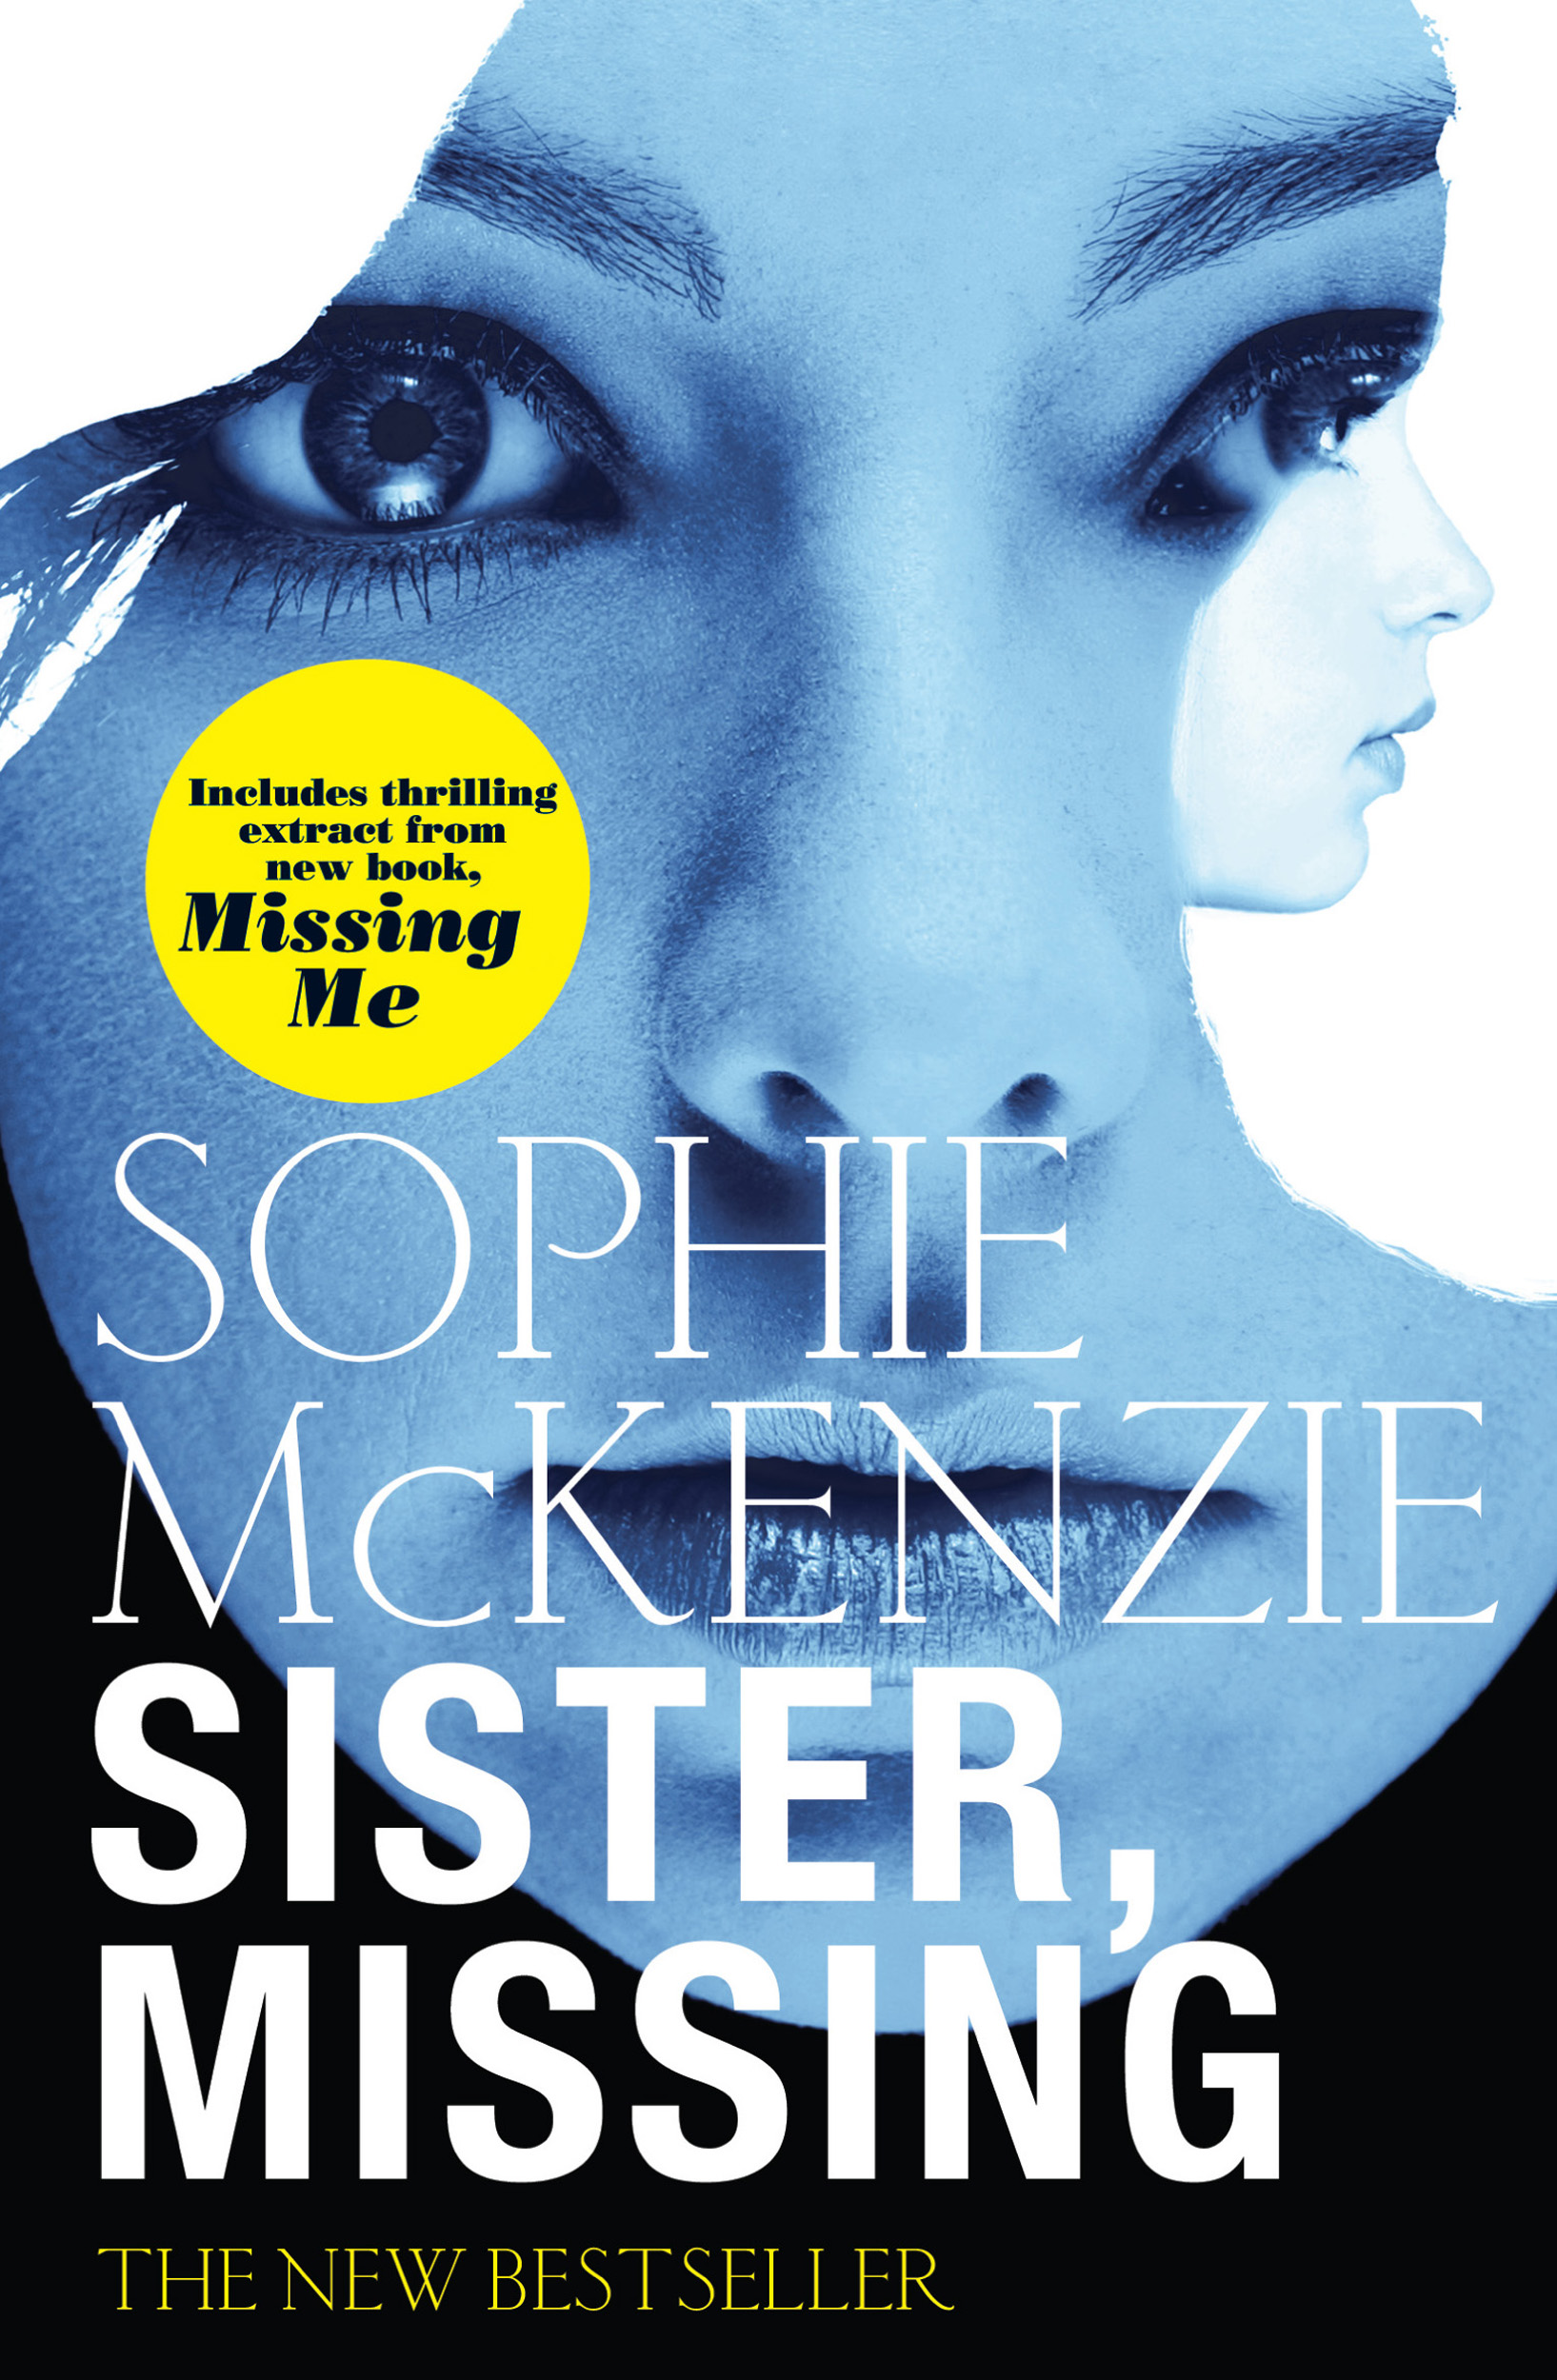 Sister missing book by sophie mckenzie official publisher page cvr9780857072894 9780857072894 hr fandeluxe Choice Image